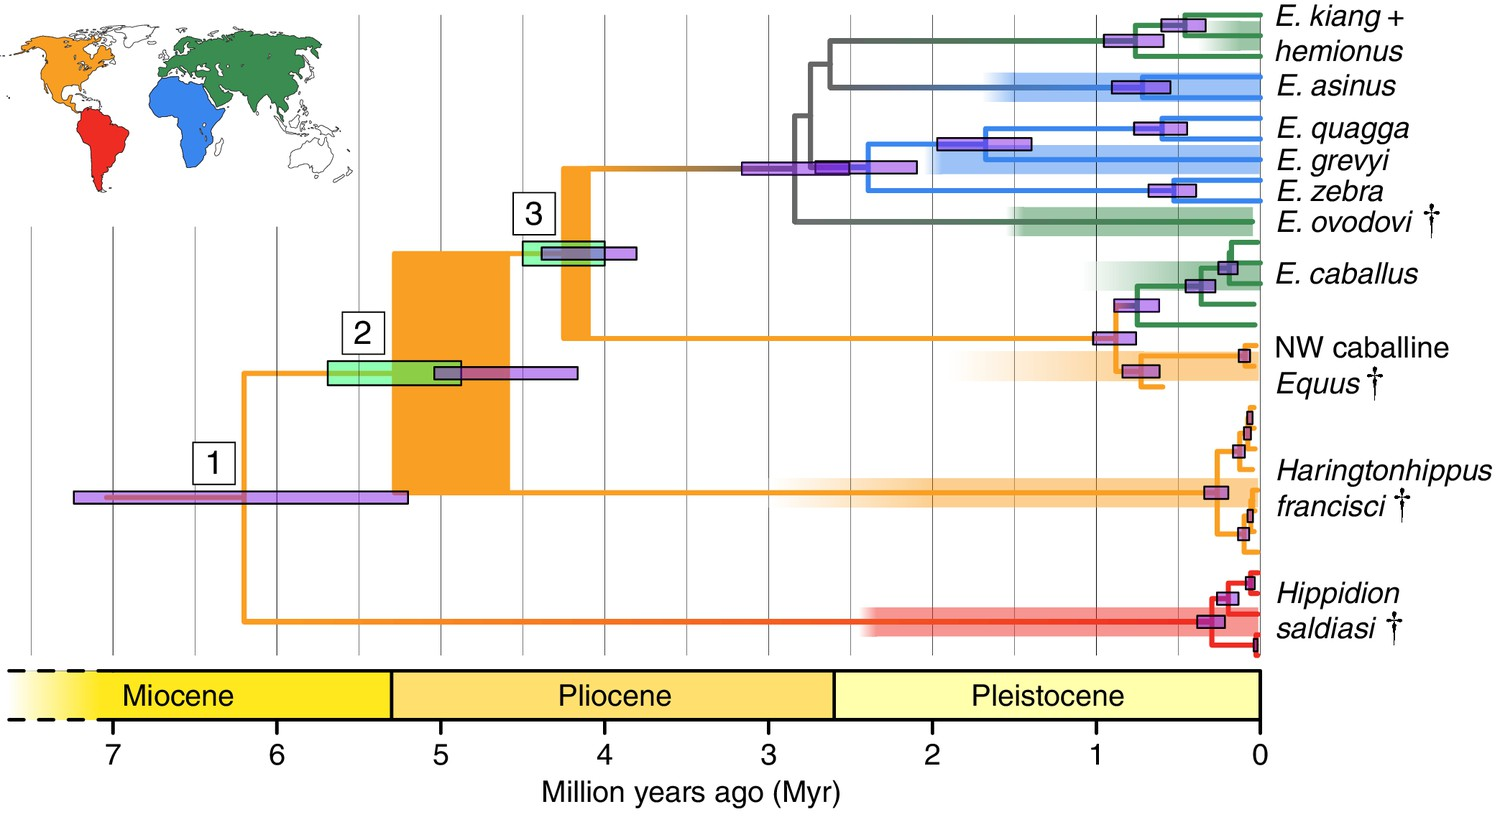 A new genus of horse from Pleistocene North America | eLife